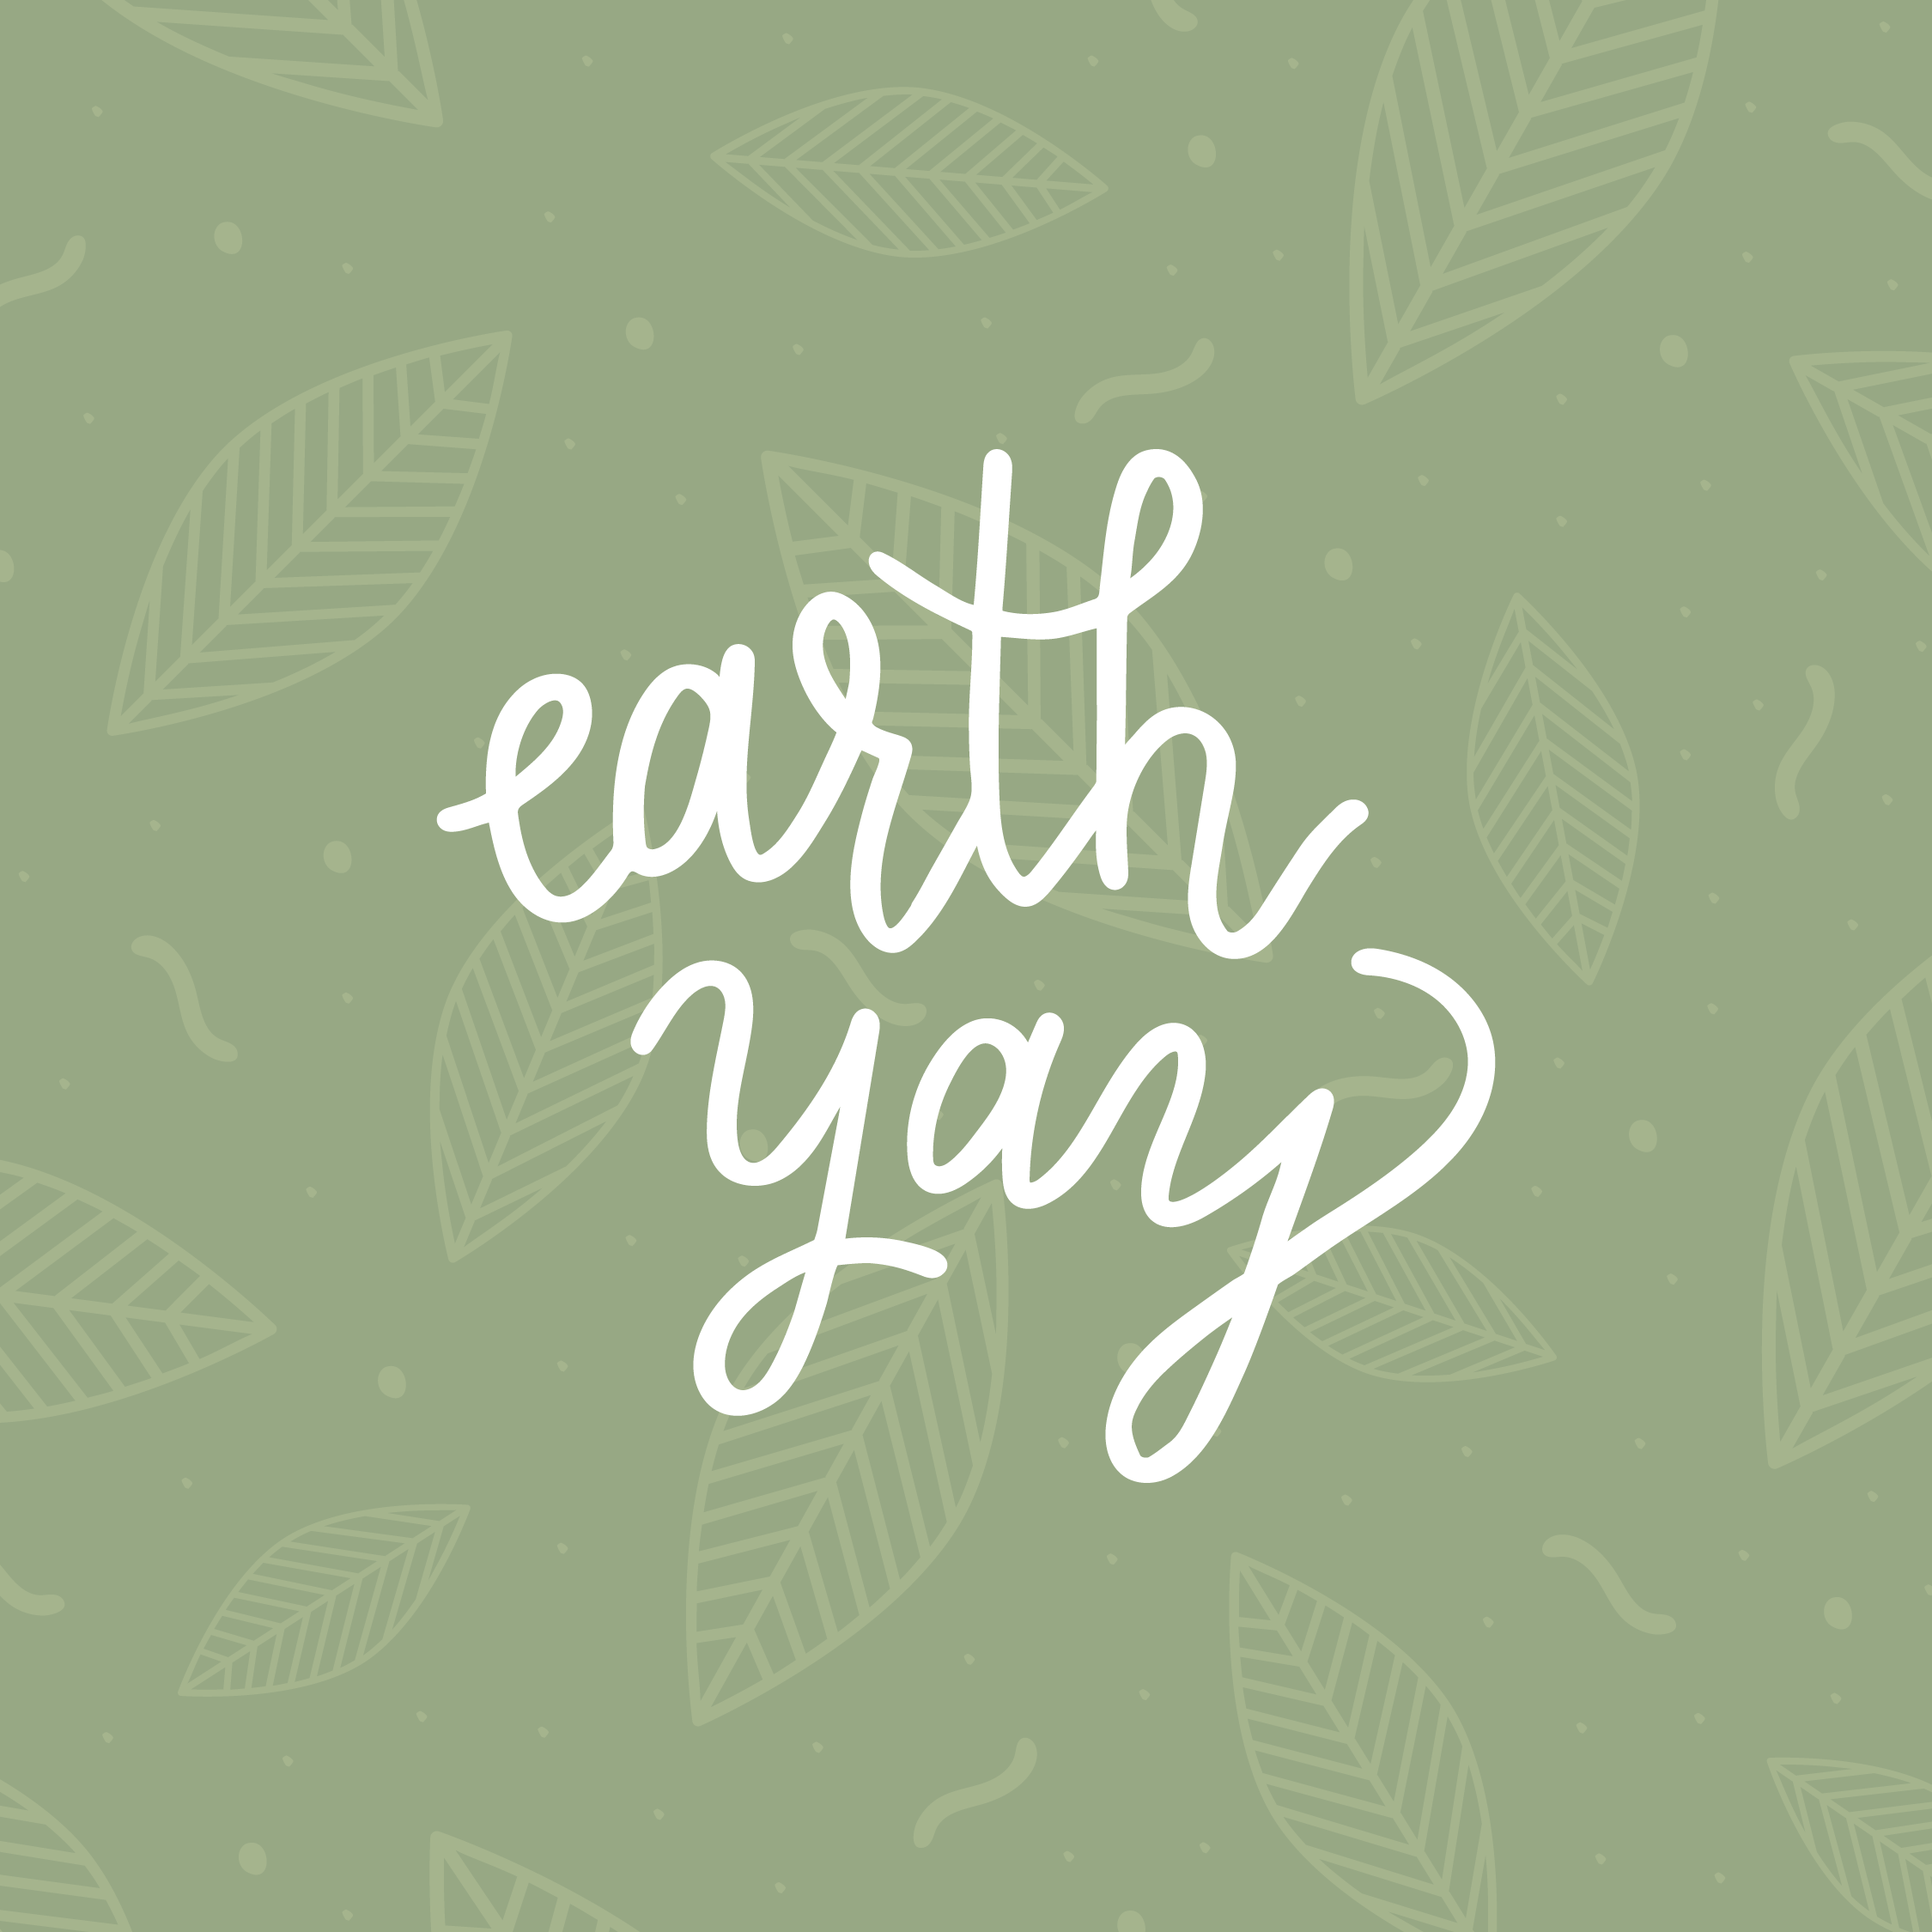 EarthYay_Large-01.png